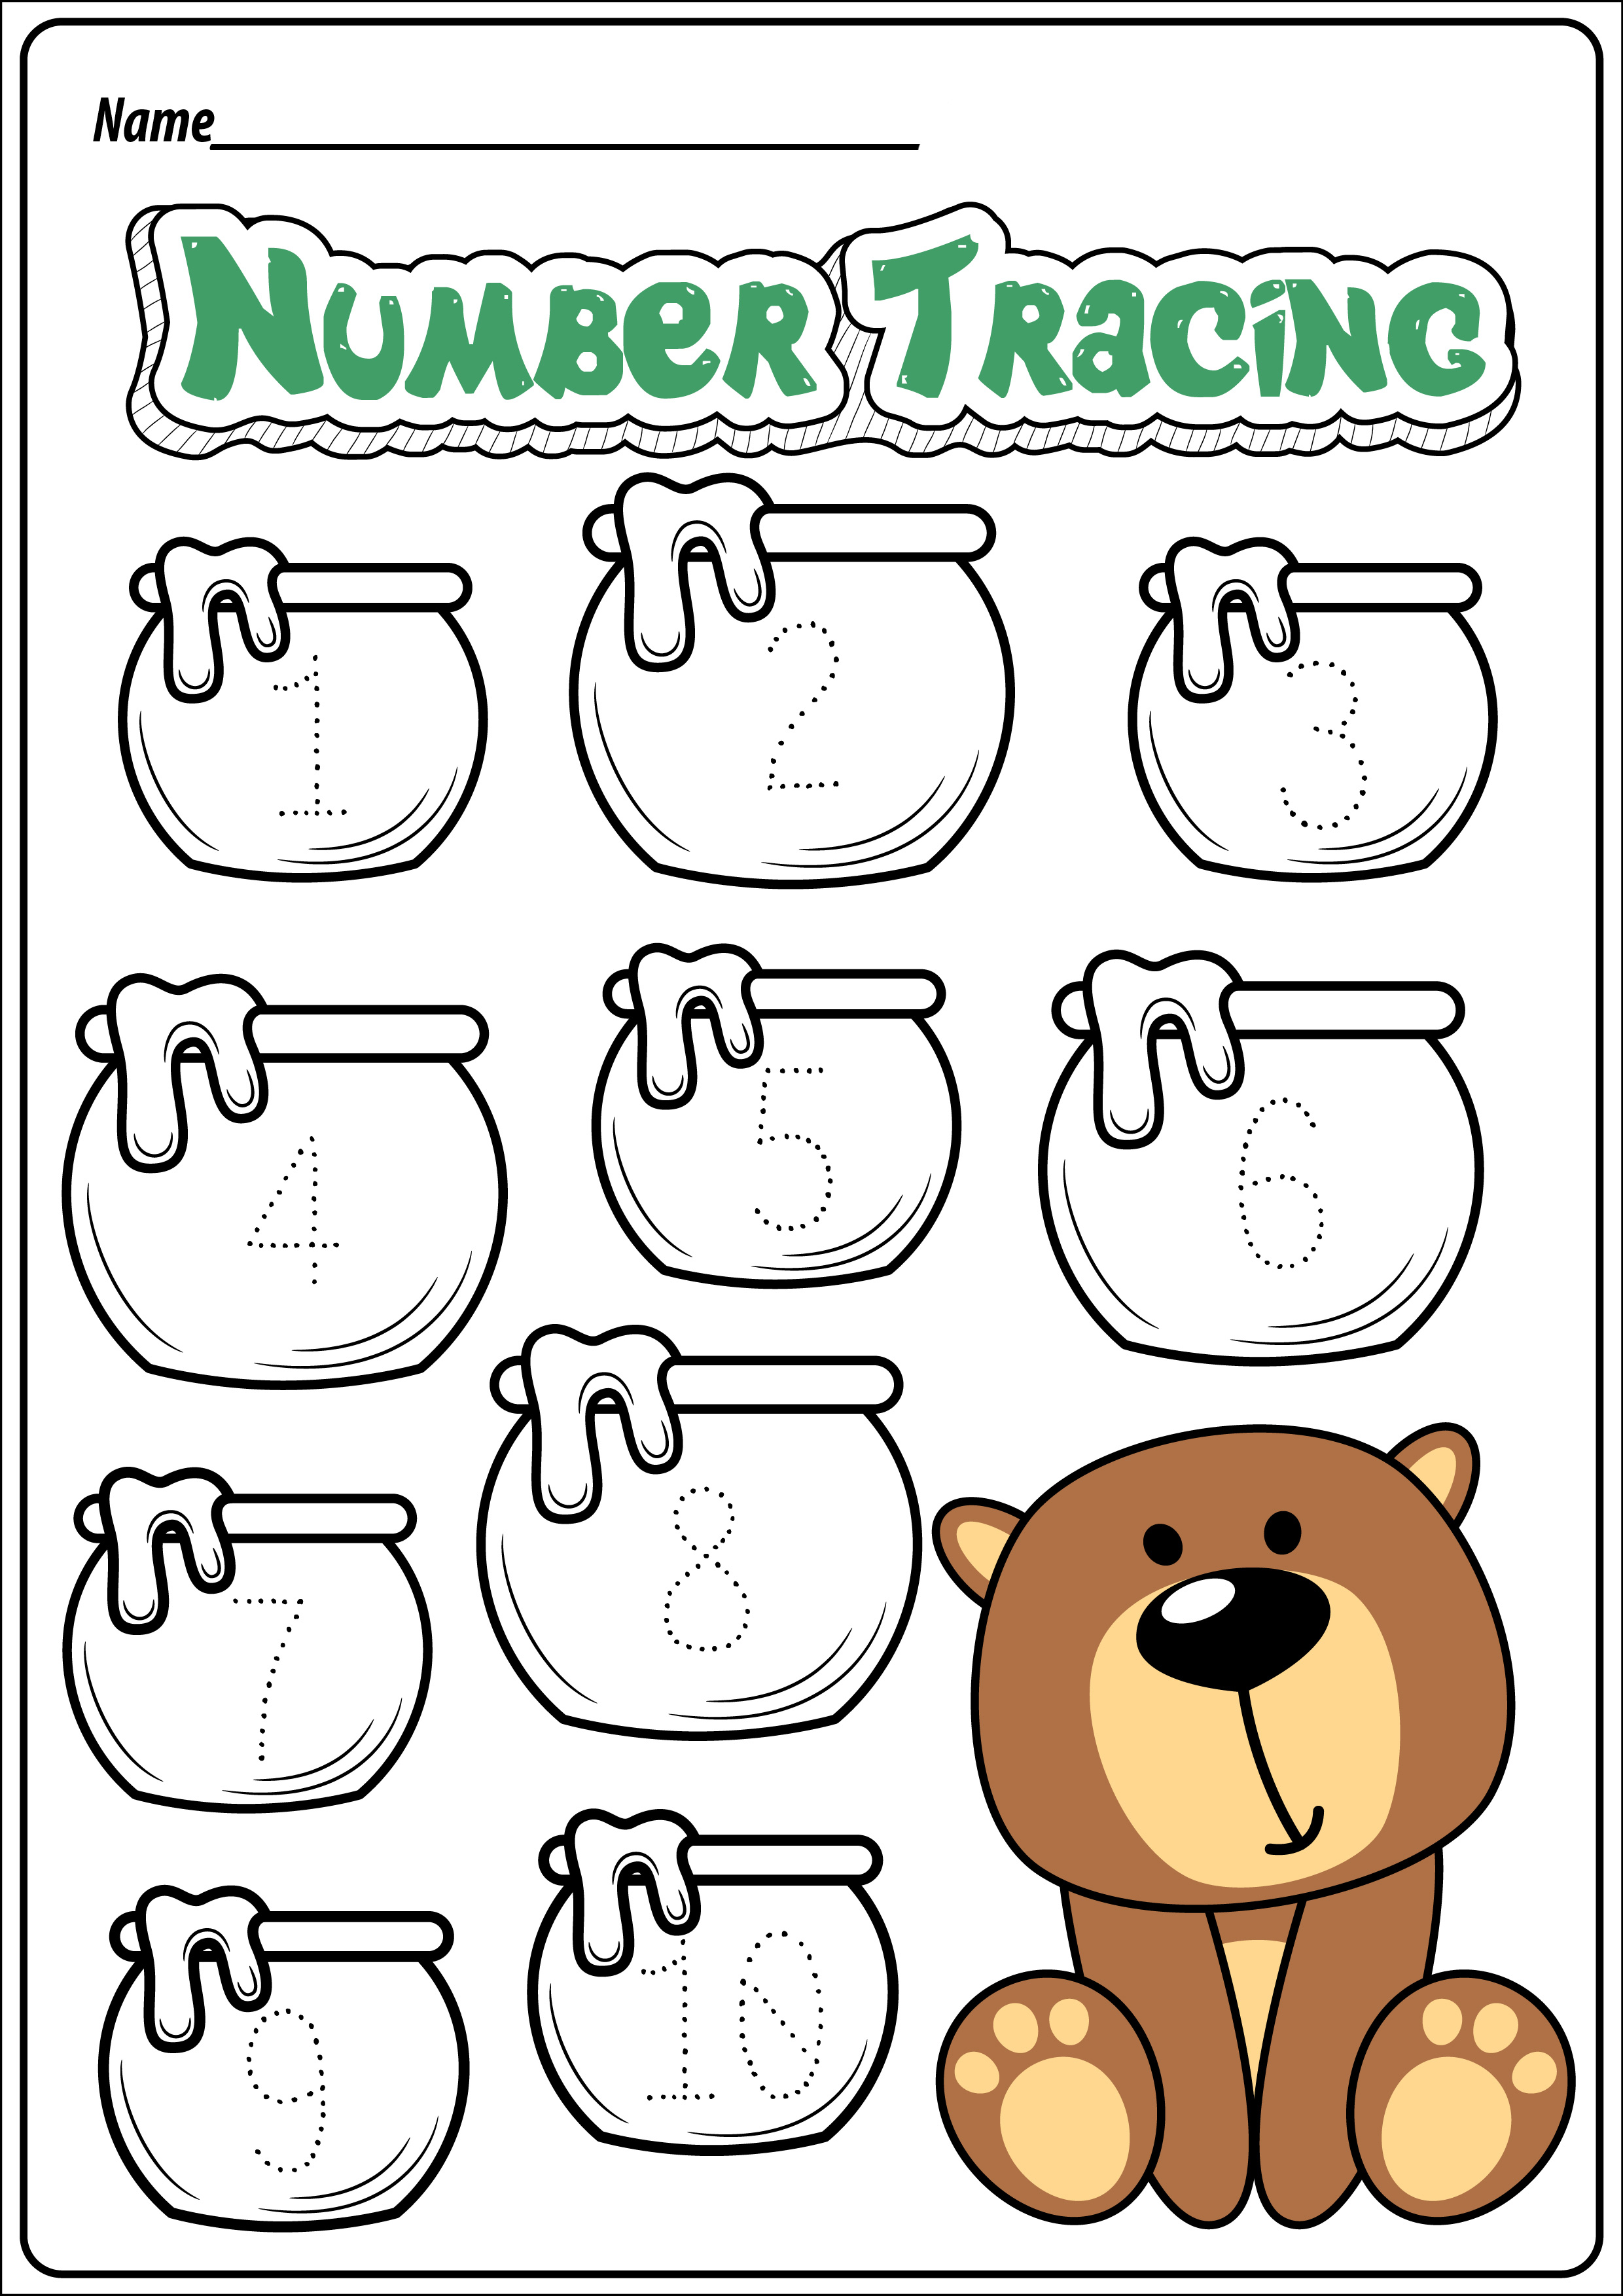 Free Bear Themed Printable Worksheets